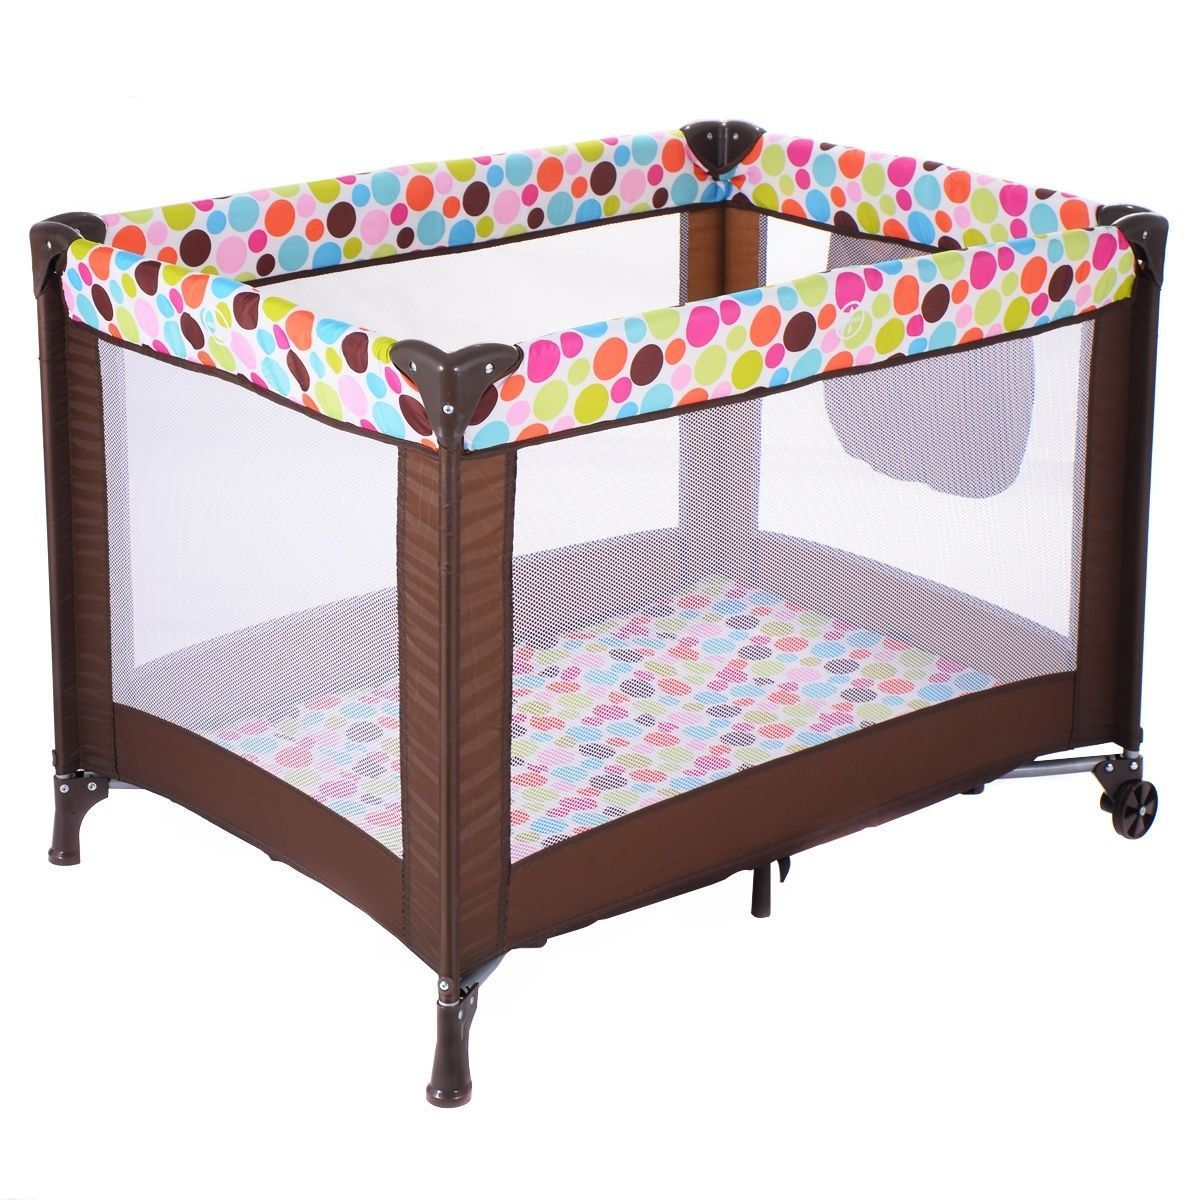 Pack N Play Baby Playpen Bassinet Playard Travel Portable Bed Toddler Foldable